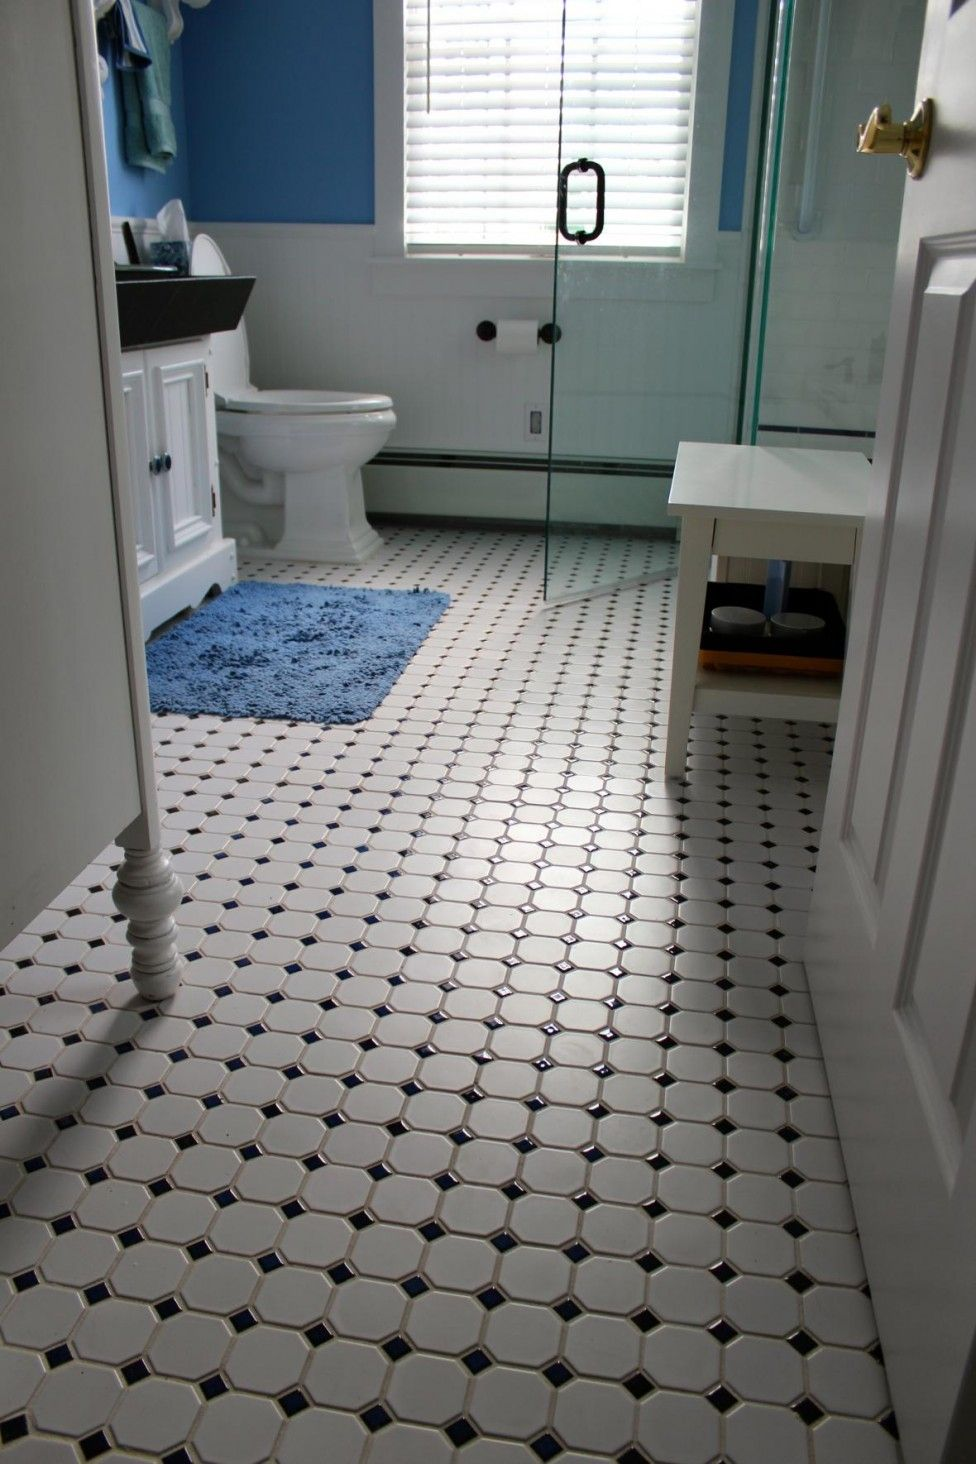 Appealing black and white bathrooms tile octagon with black dotted appealing black and white bathrooms tile octagon with black dotted bathroom floor tile eas in white dailygadgetfo Image collections